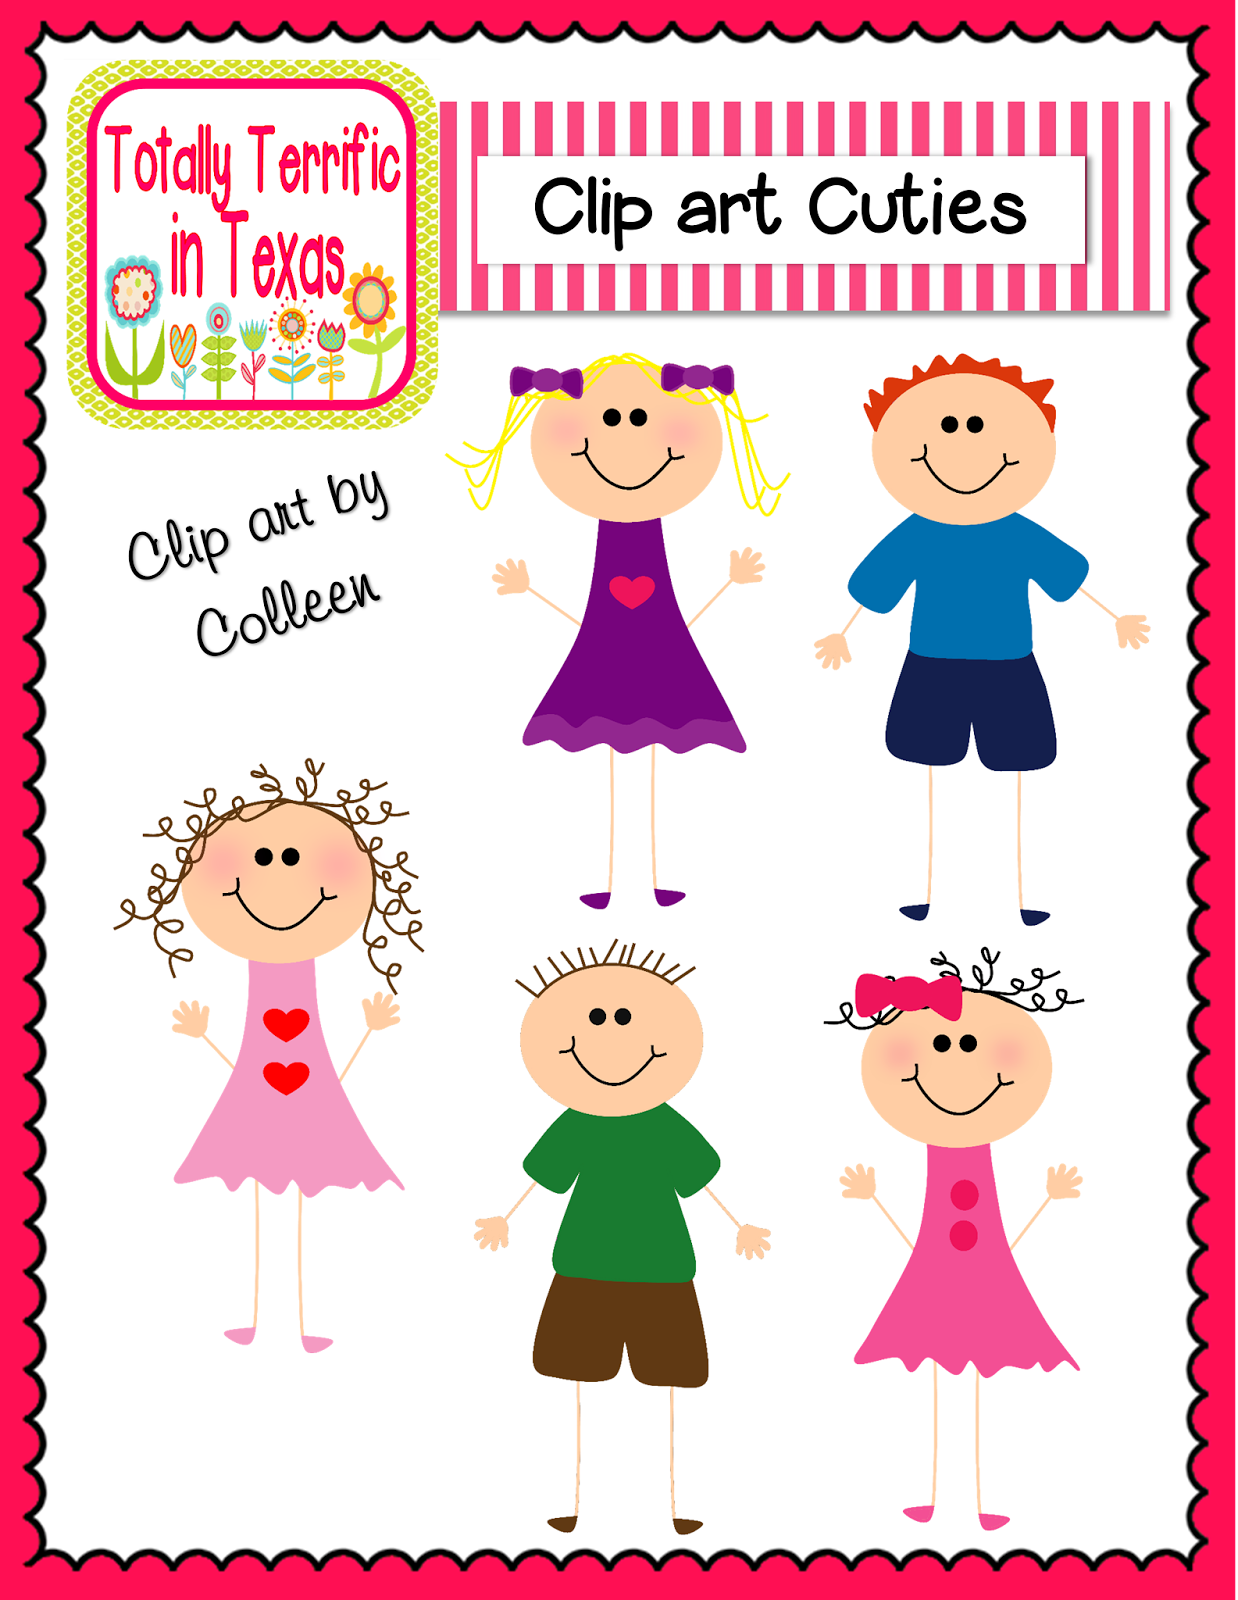 http://www.teacherspayteachers.com/Product/Clip-Art-Cuties-Color-1261347